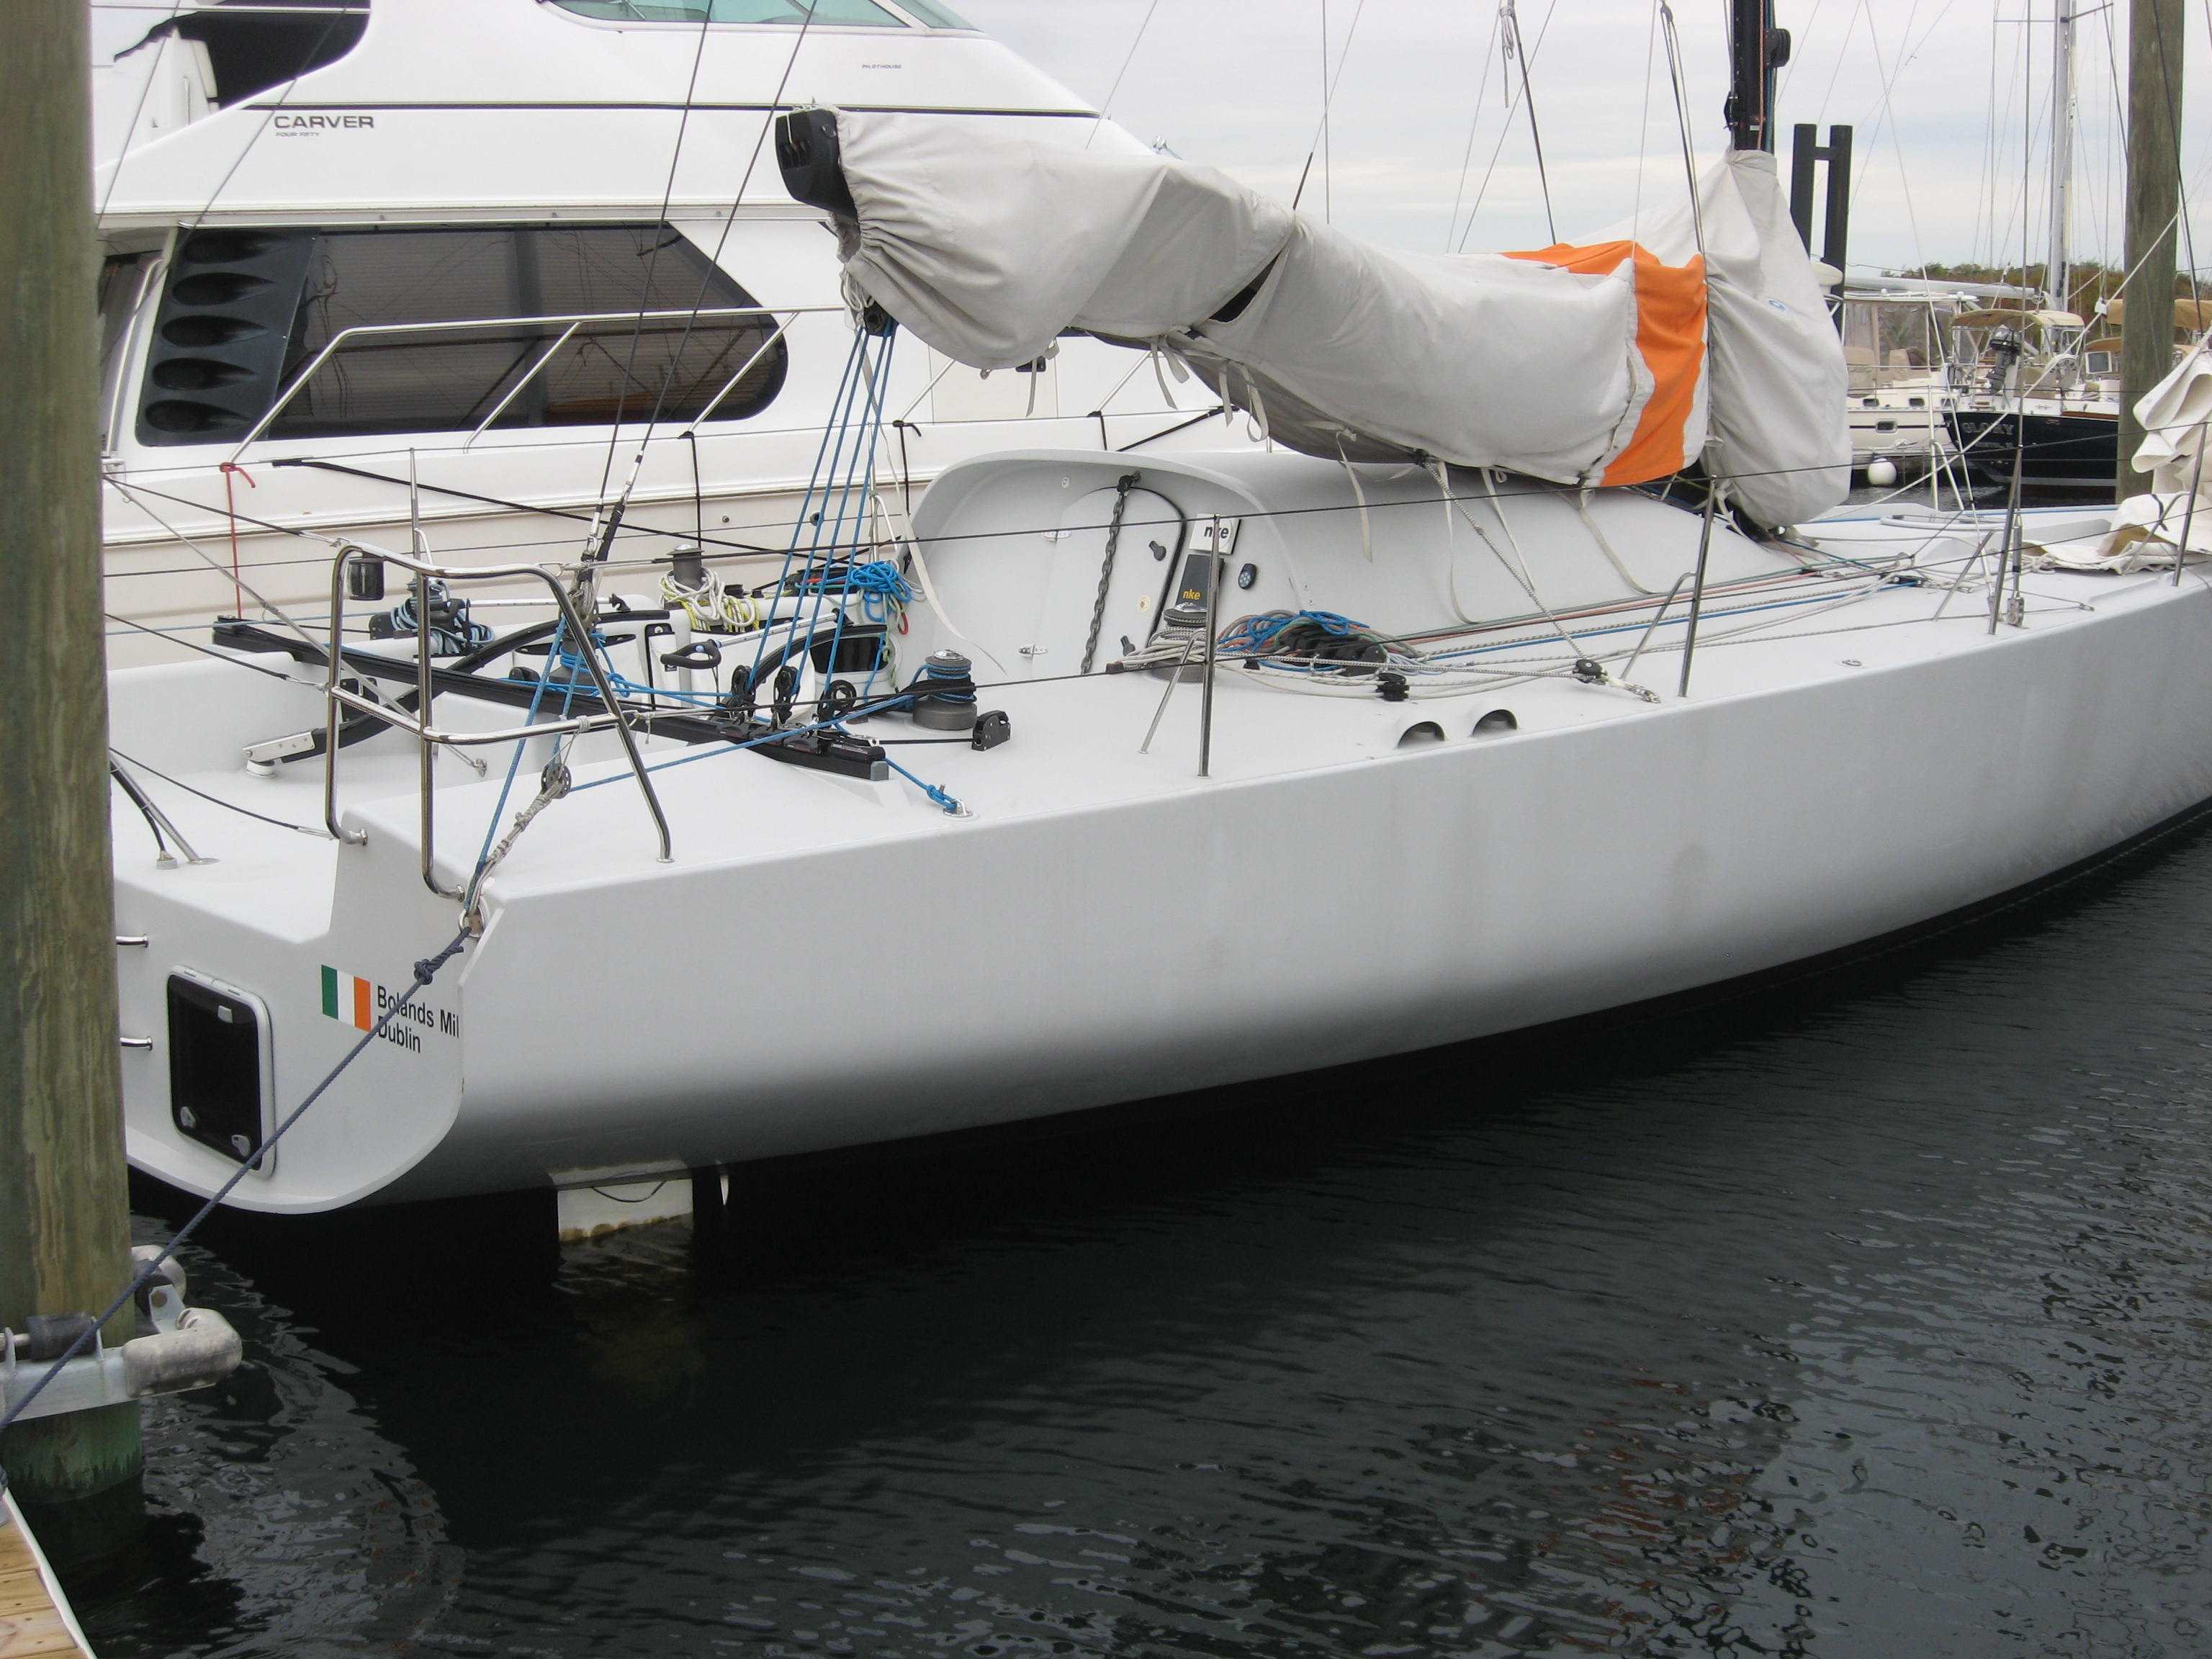 A class 40. One of the impressive fefatures of these boats is the really properly water tight hatch into the cabin.